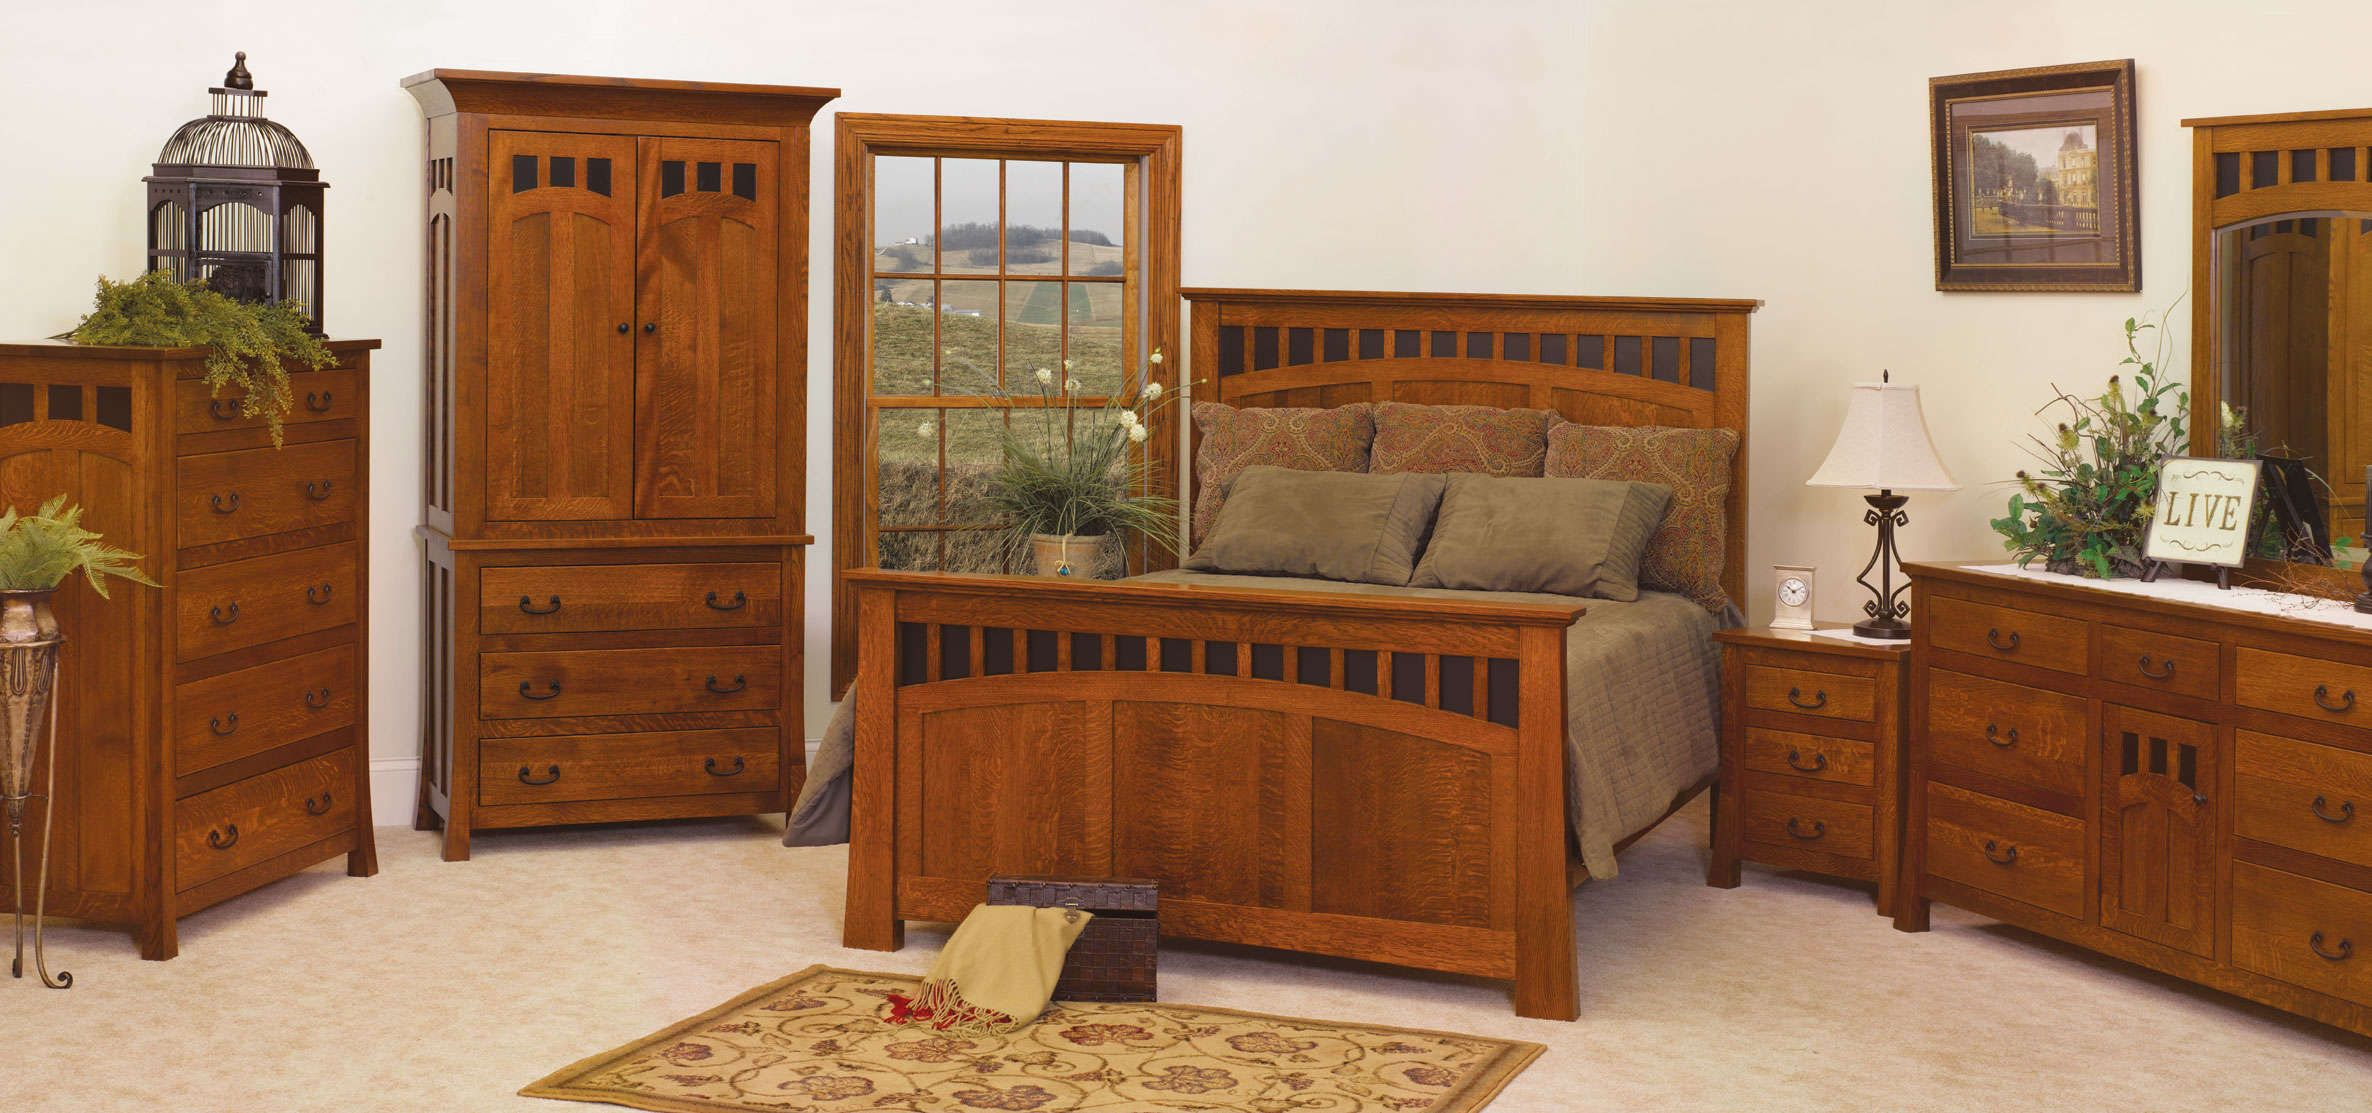 solid wood is a term most commonly used to distinguish between